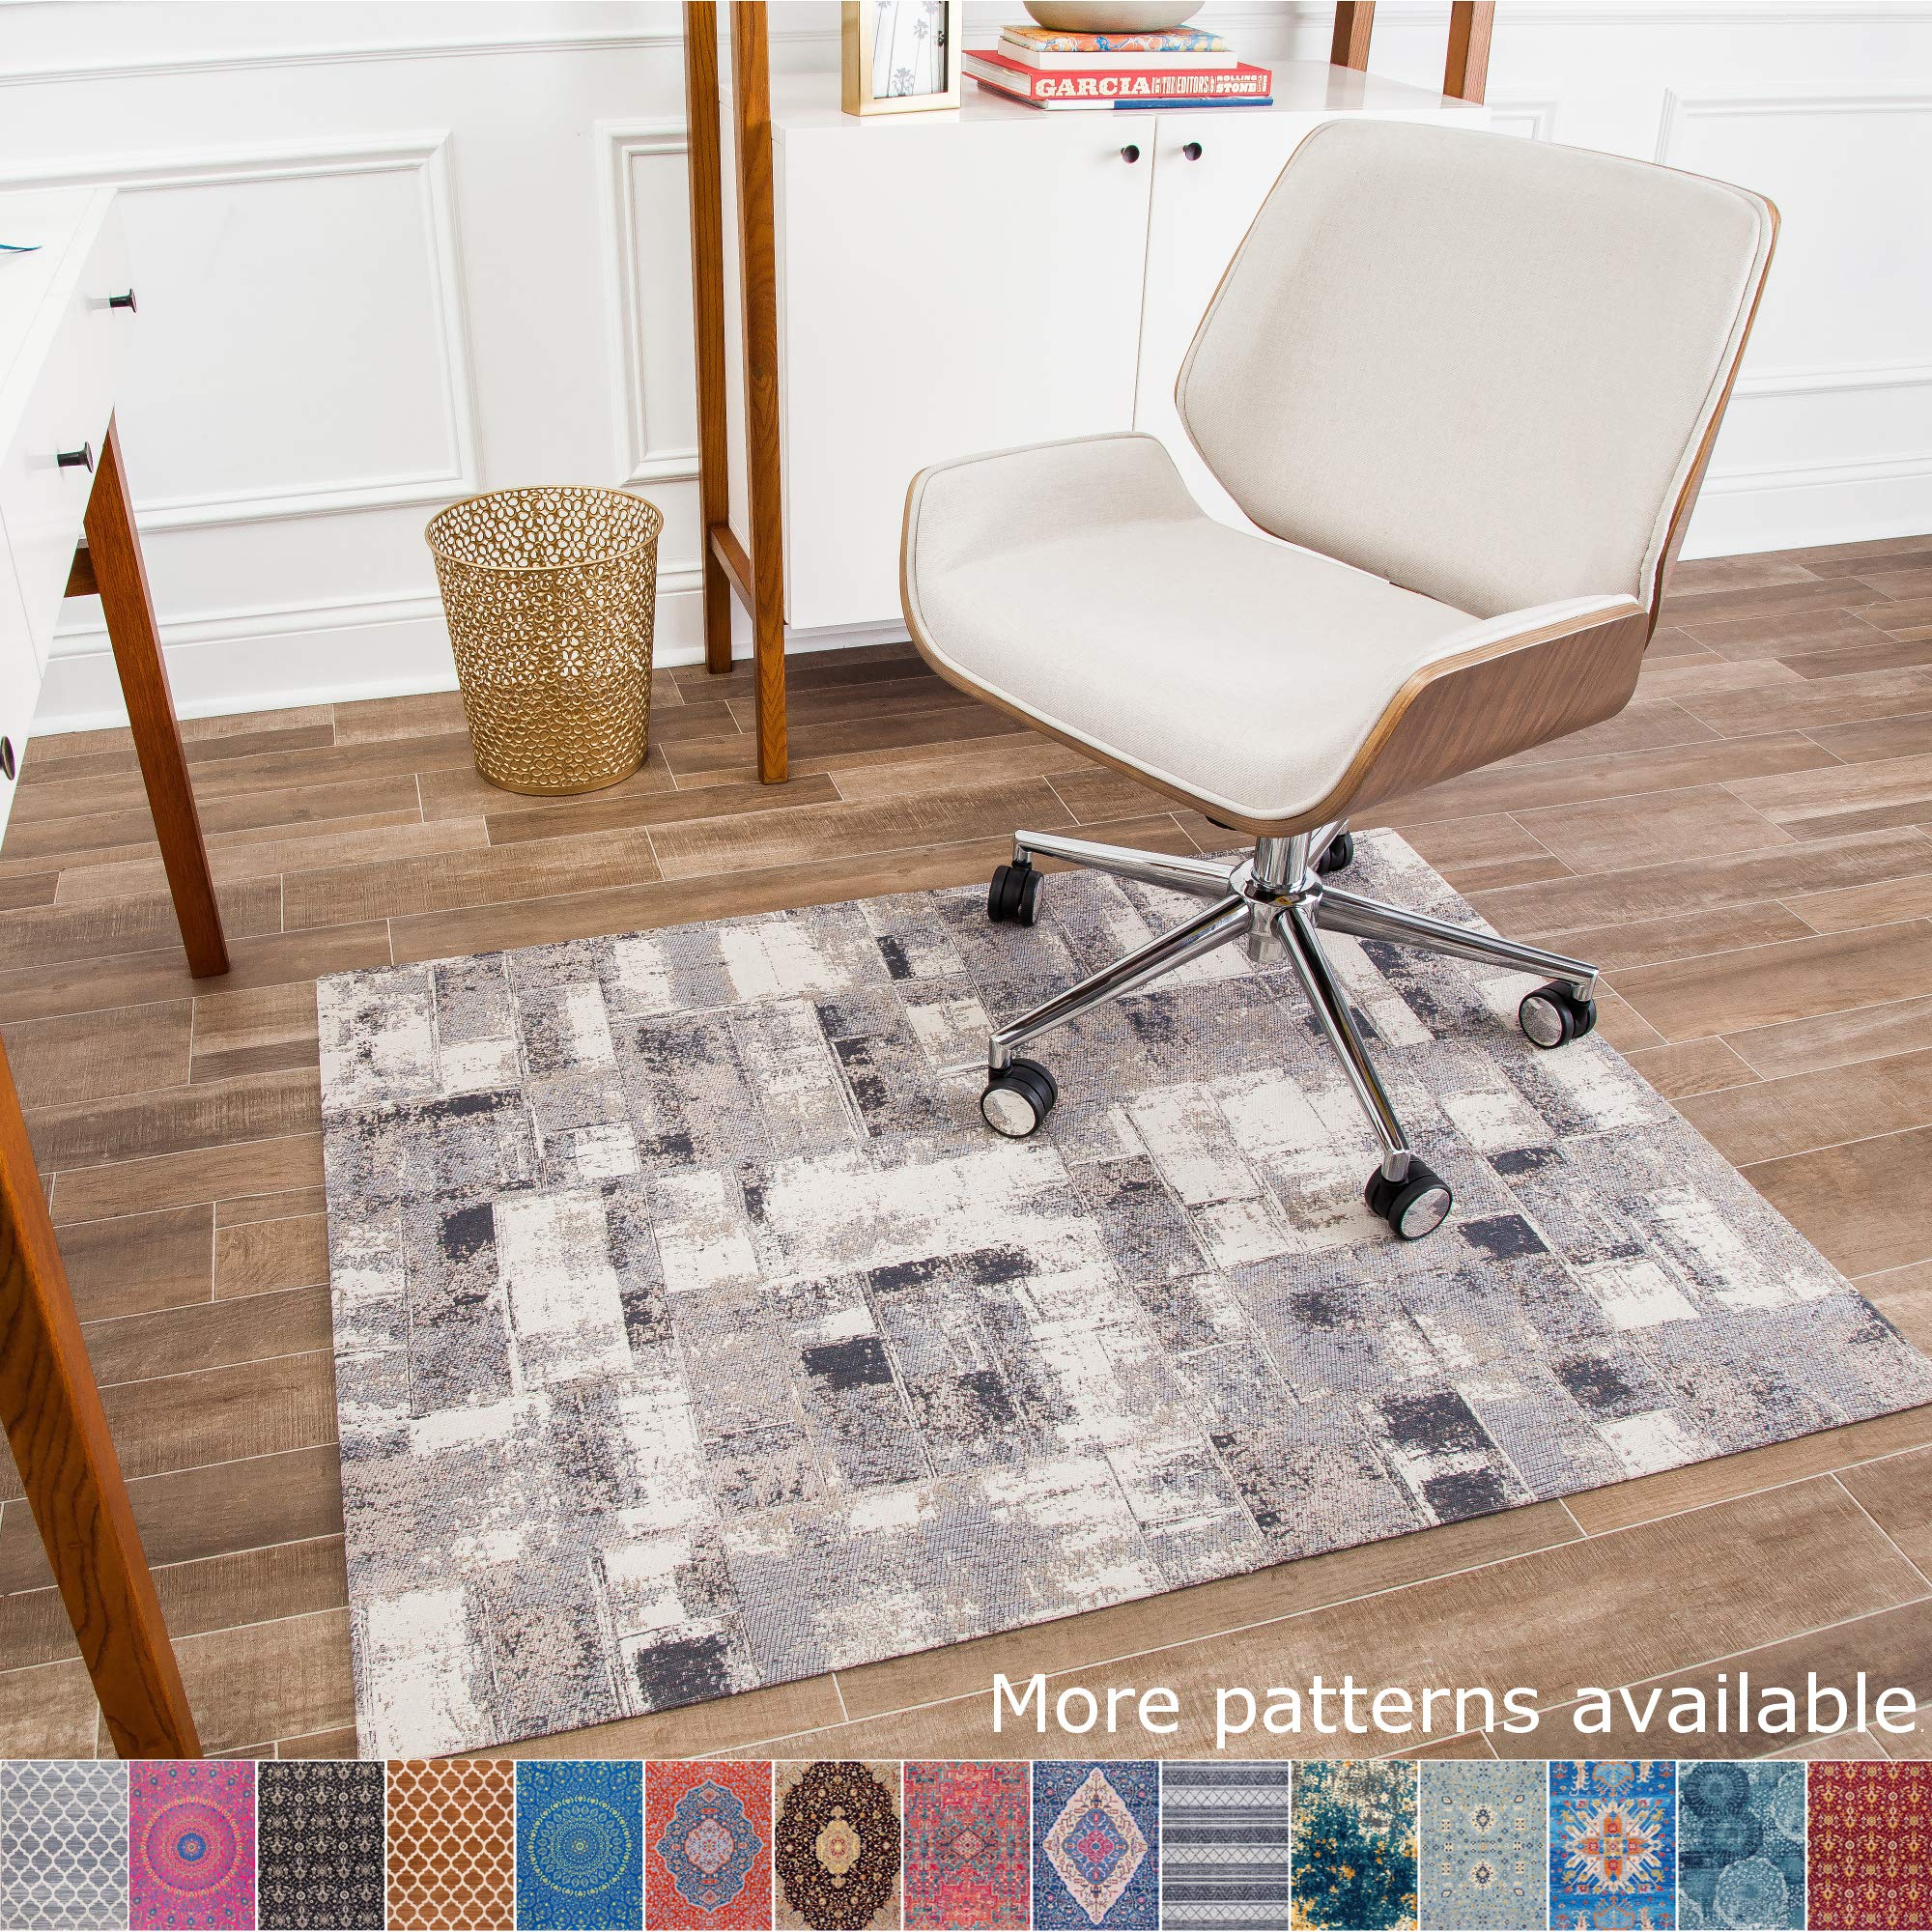 Anji Mountain Chair Mat Rug'd Collection, 1/4'' Thick - For Low Pile Carpets & Hard Surfaces, Aahus , Gray Modern Multi-Square by Anji Mountain